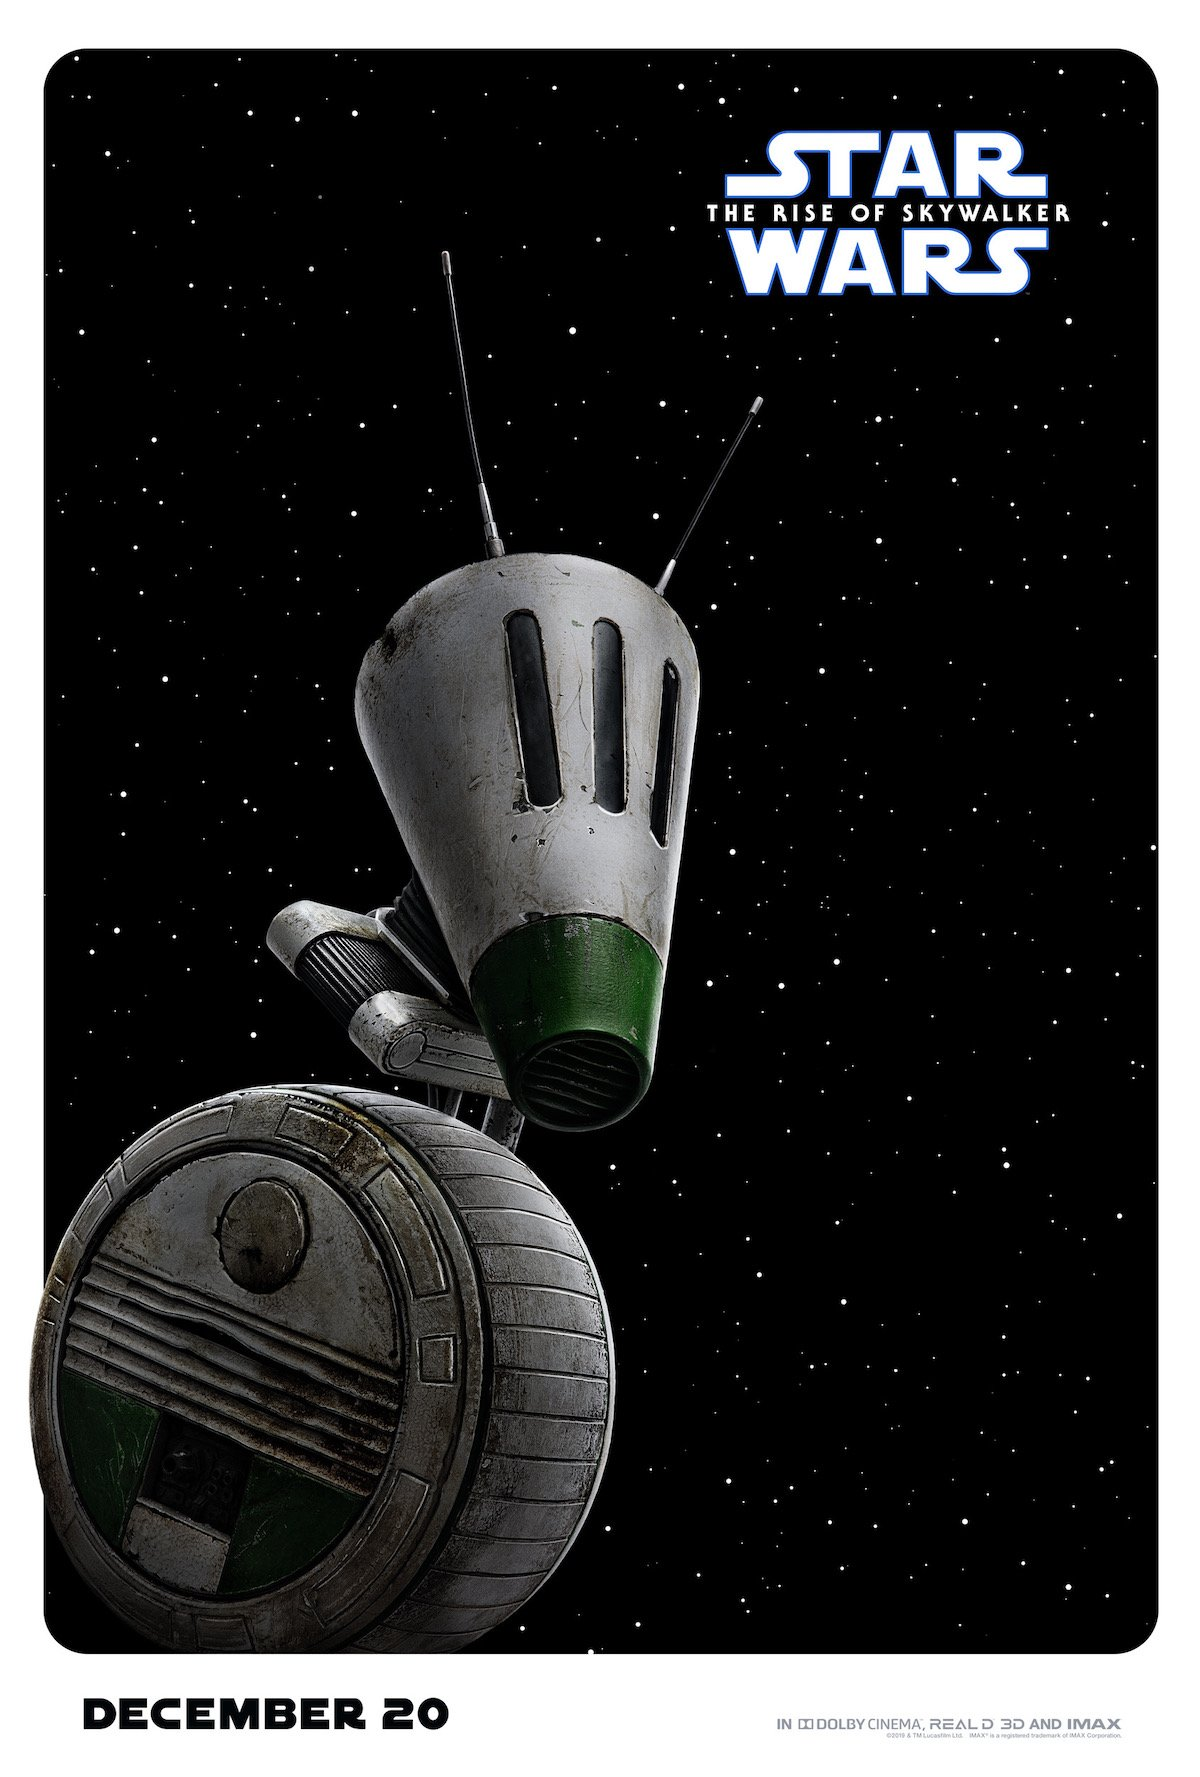 D-O droid, Rise of Skywalker character poster